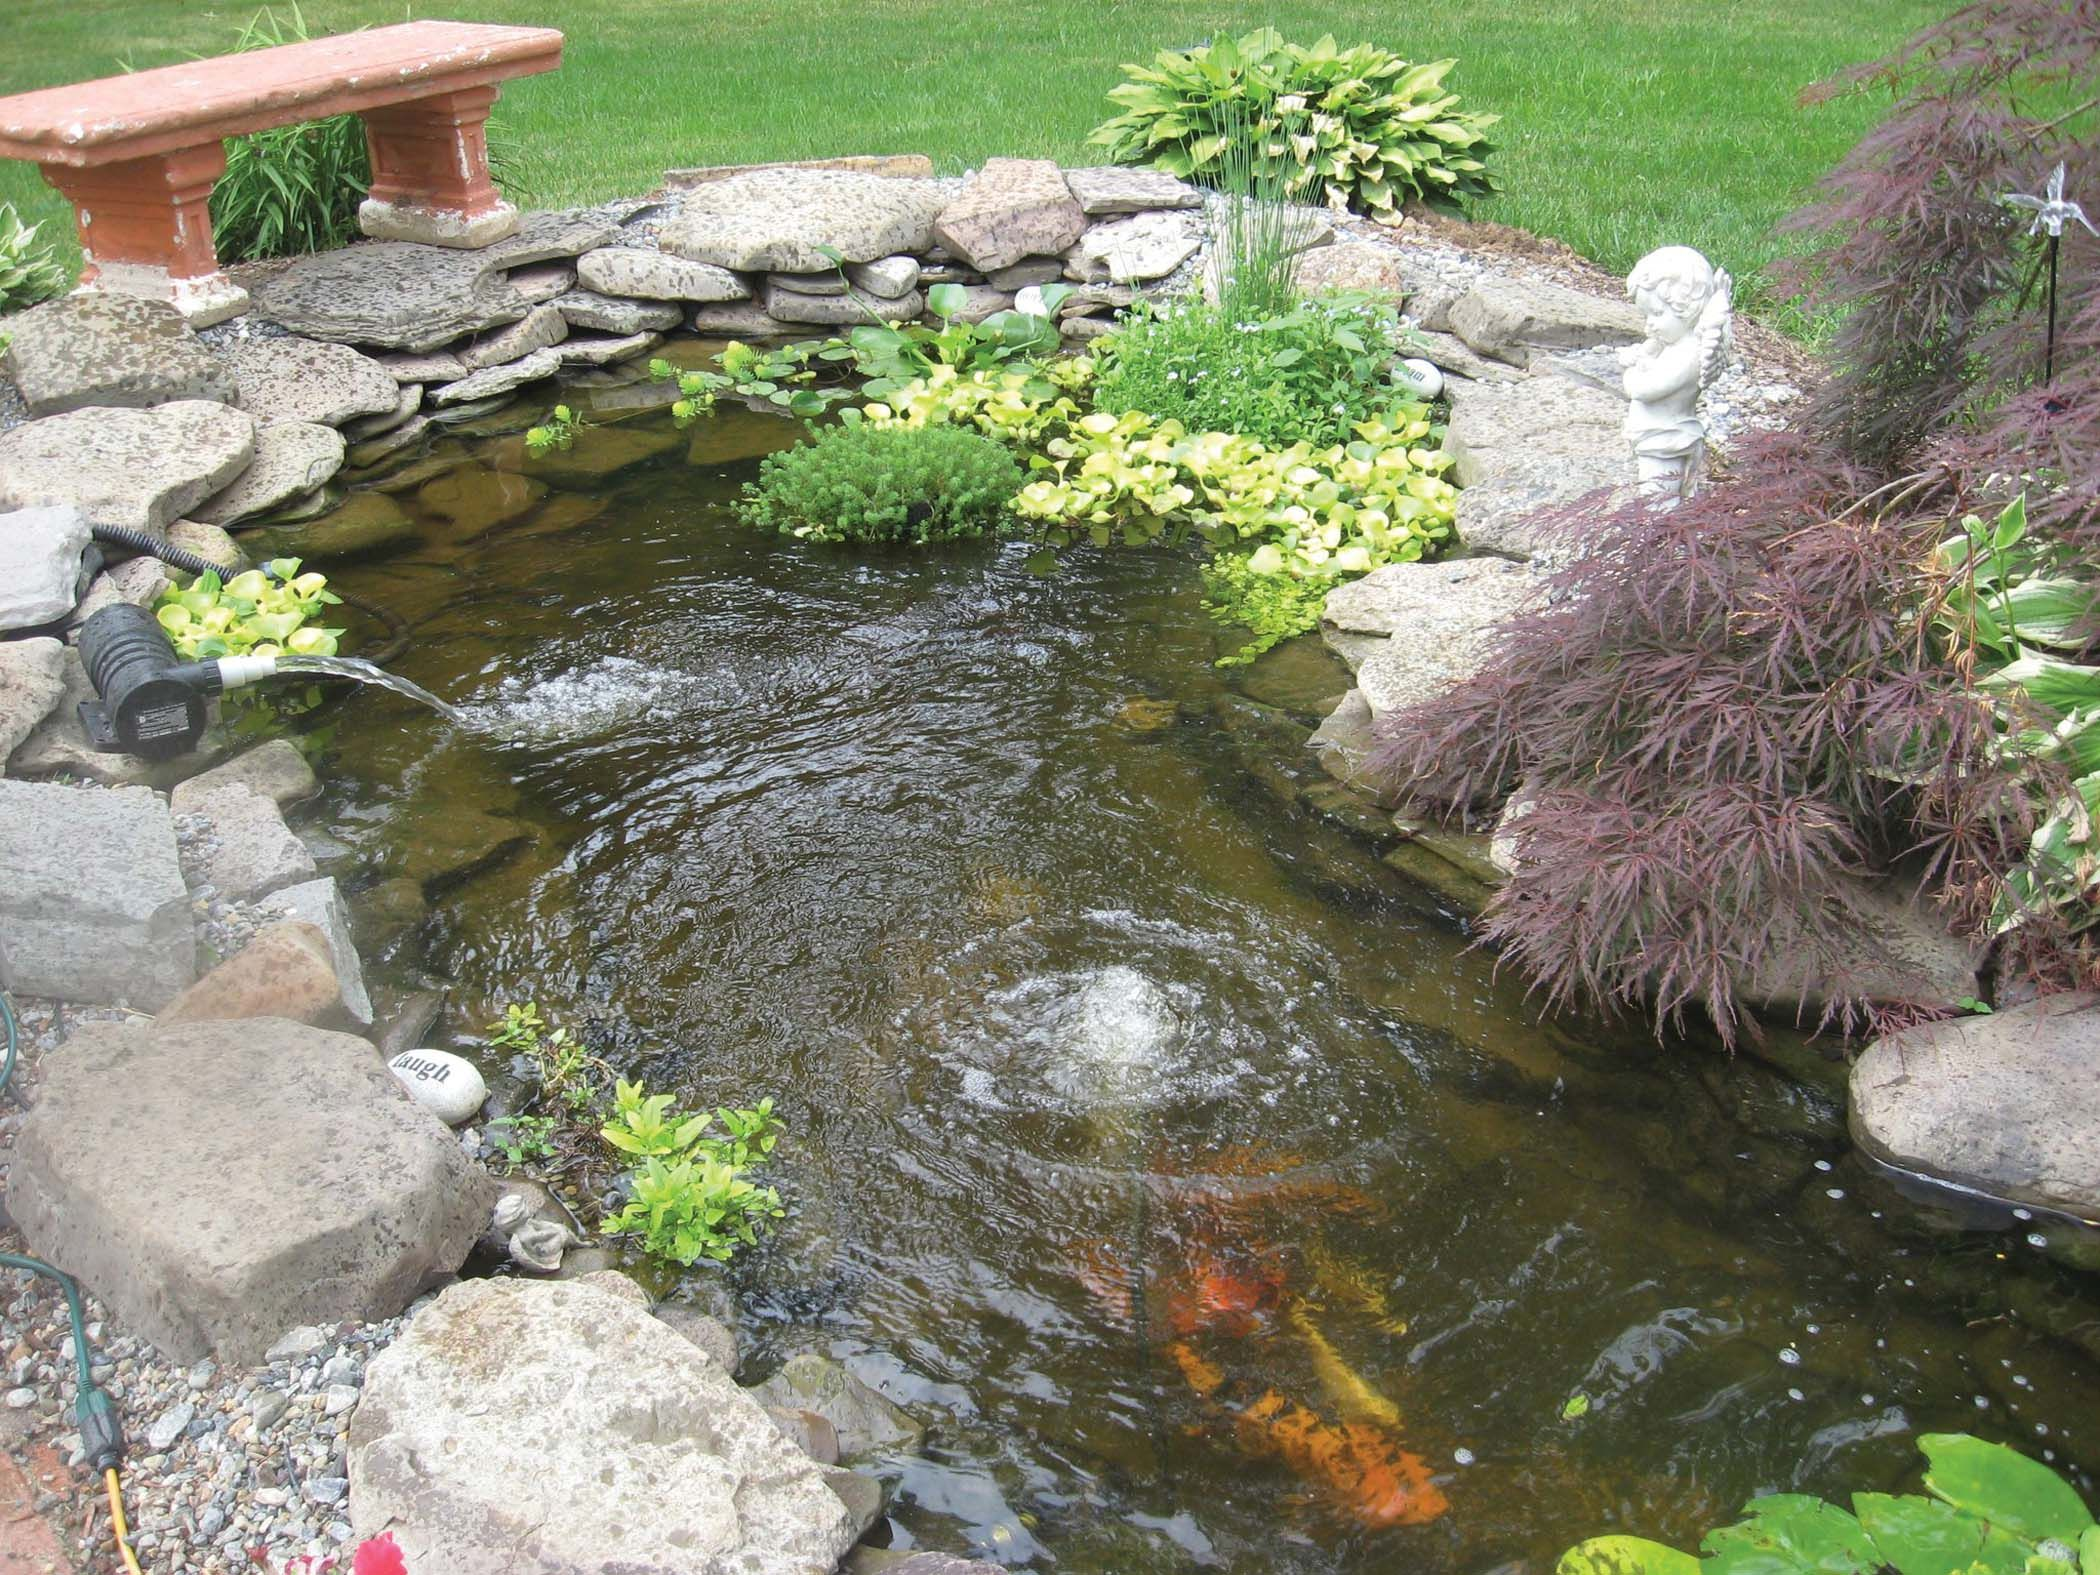 Small koi pond kits garden pond and koi pond aeration backyard sanctuary pinterest koi Kio ponds